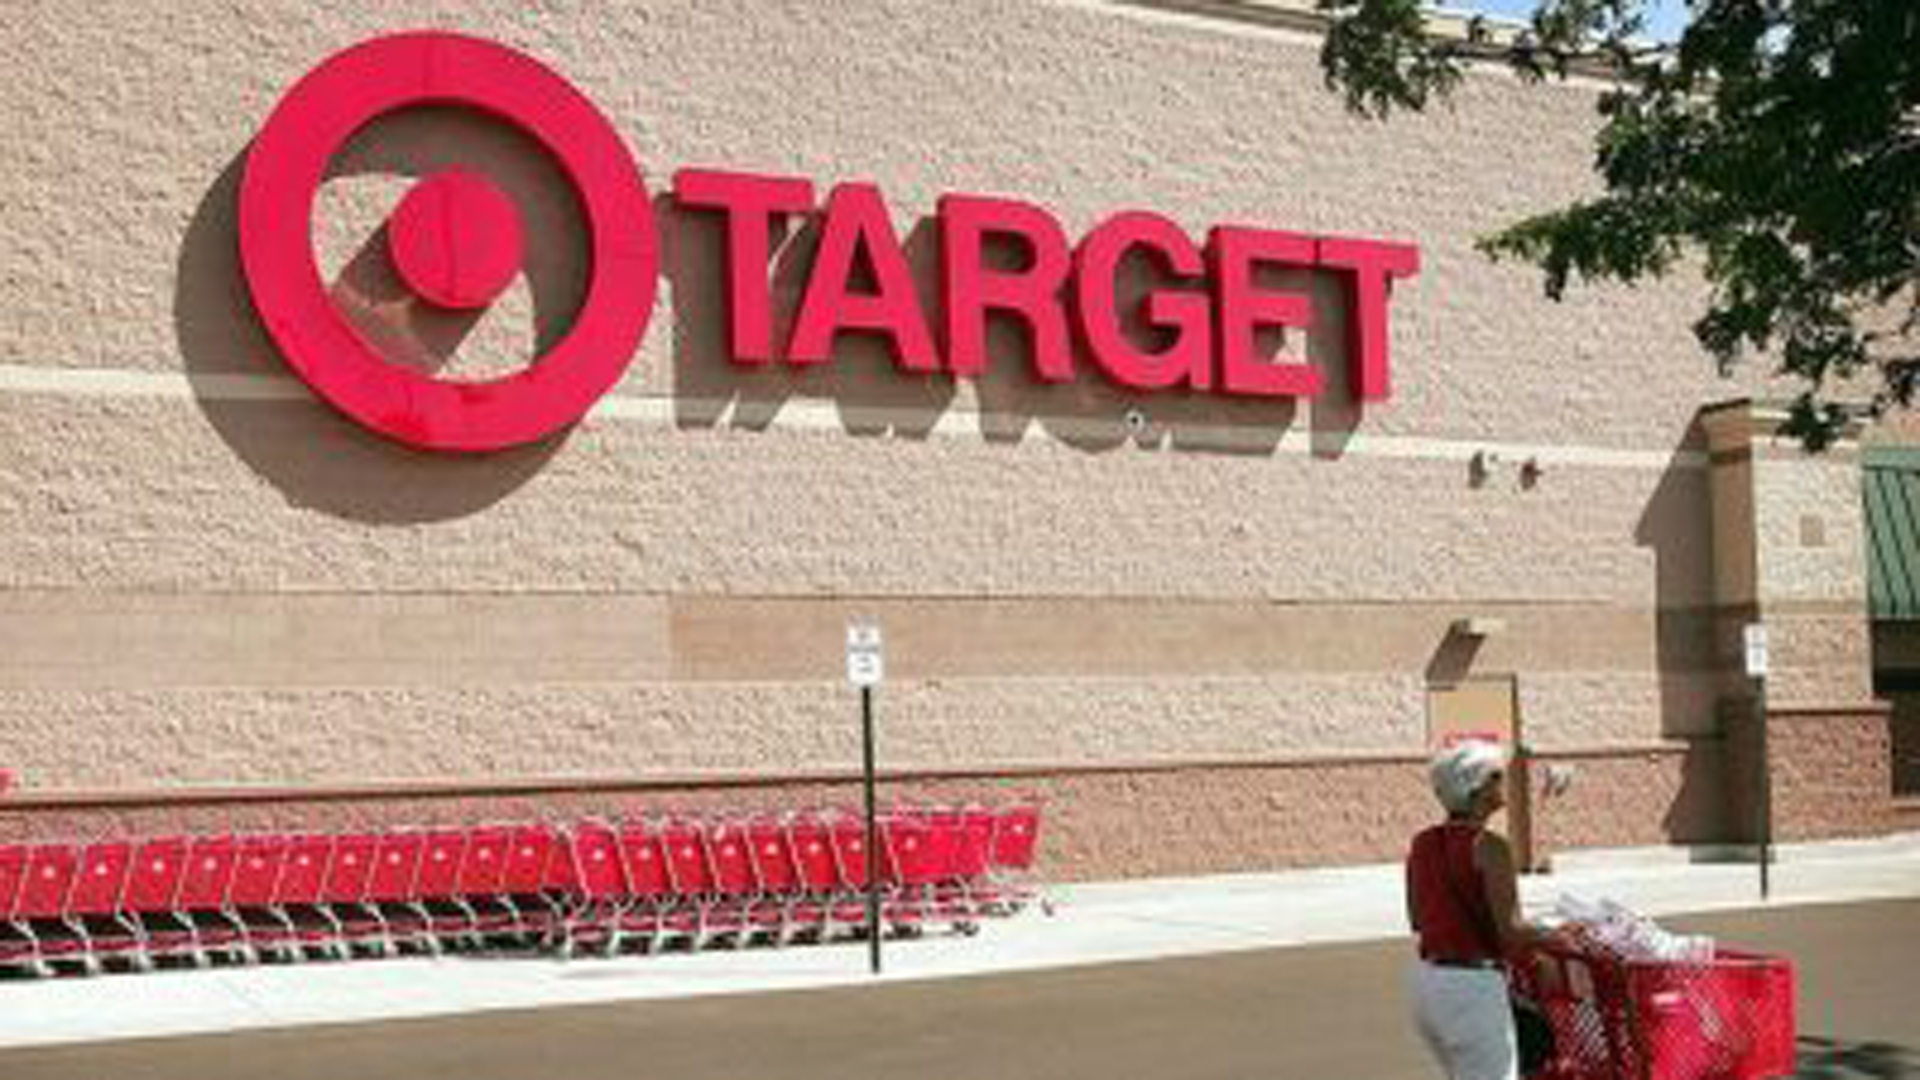 A Target storefront is seen in a file photo from KTLA sister station WGN.